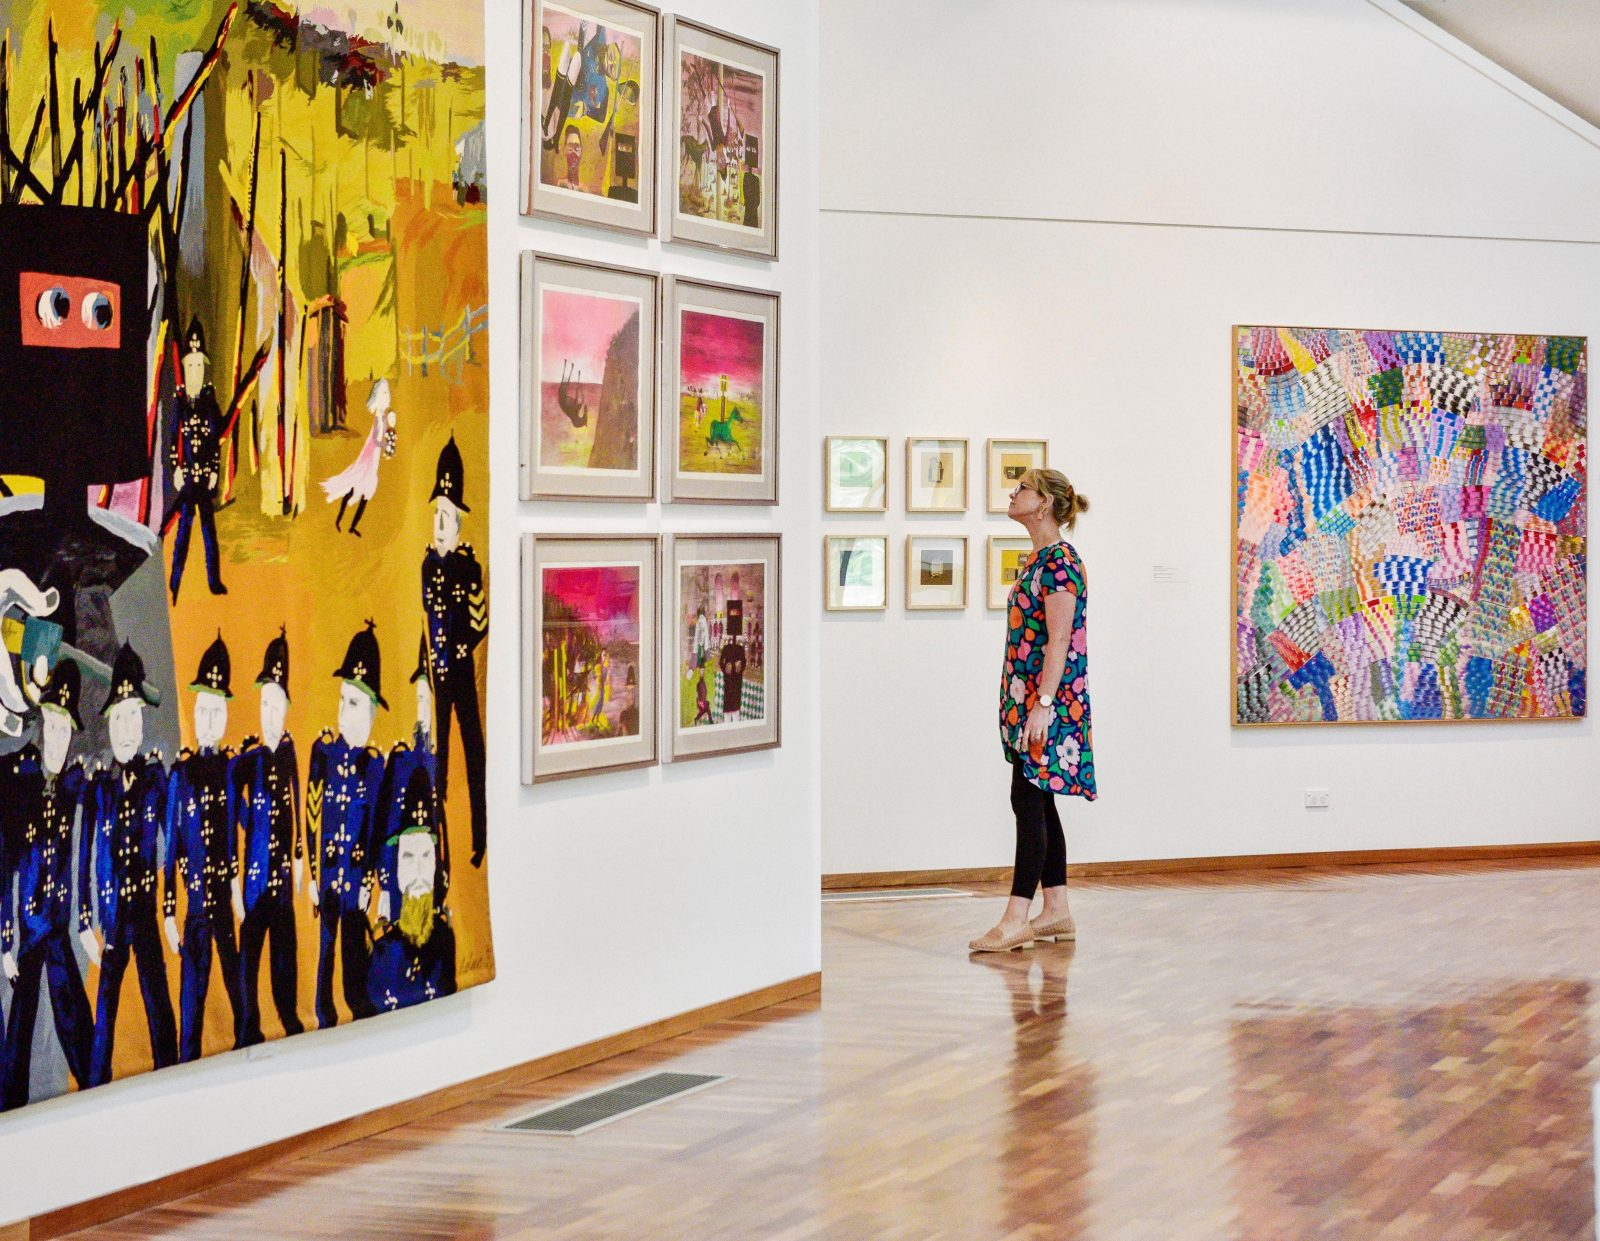 Future Perfect: Celebrating 50 Years of Benalla Art Gallery, collection exhibition 2018 to 2019